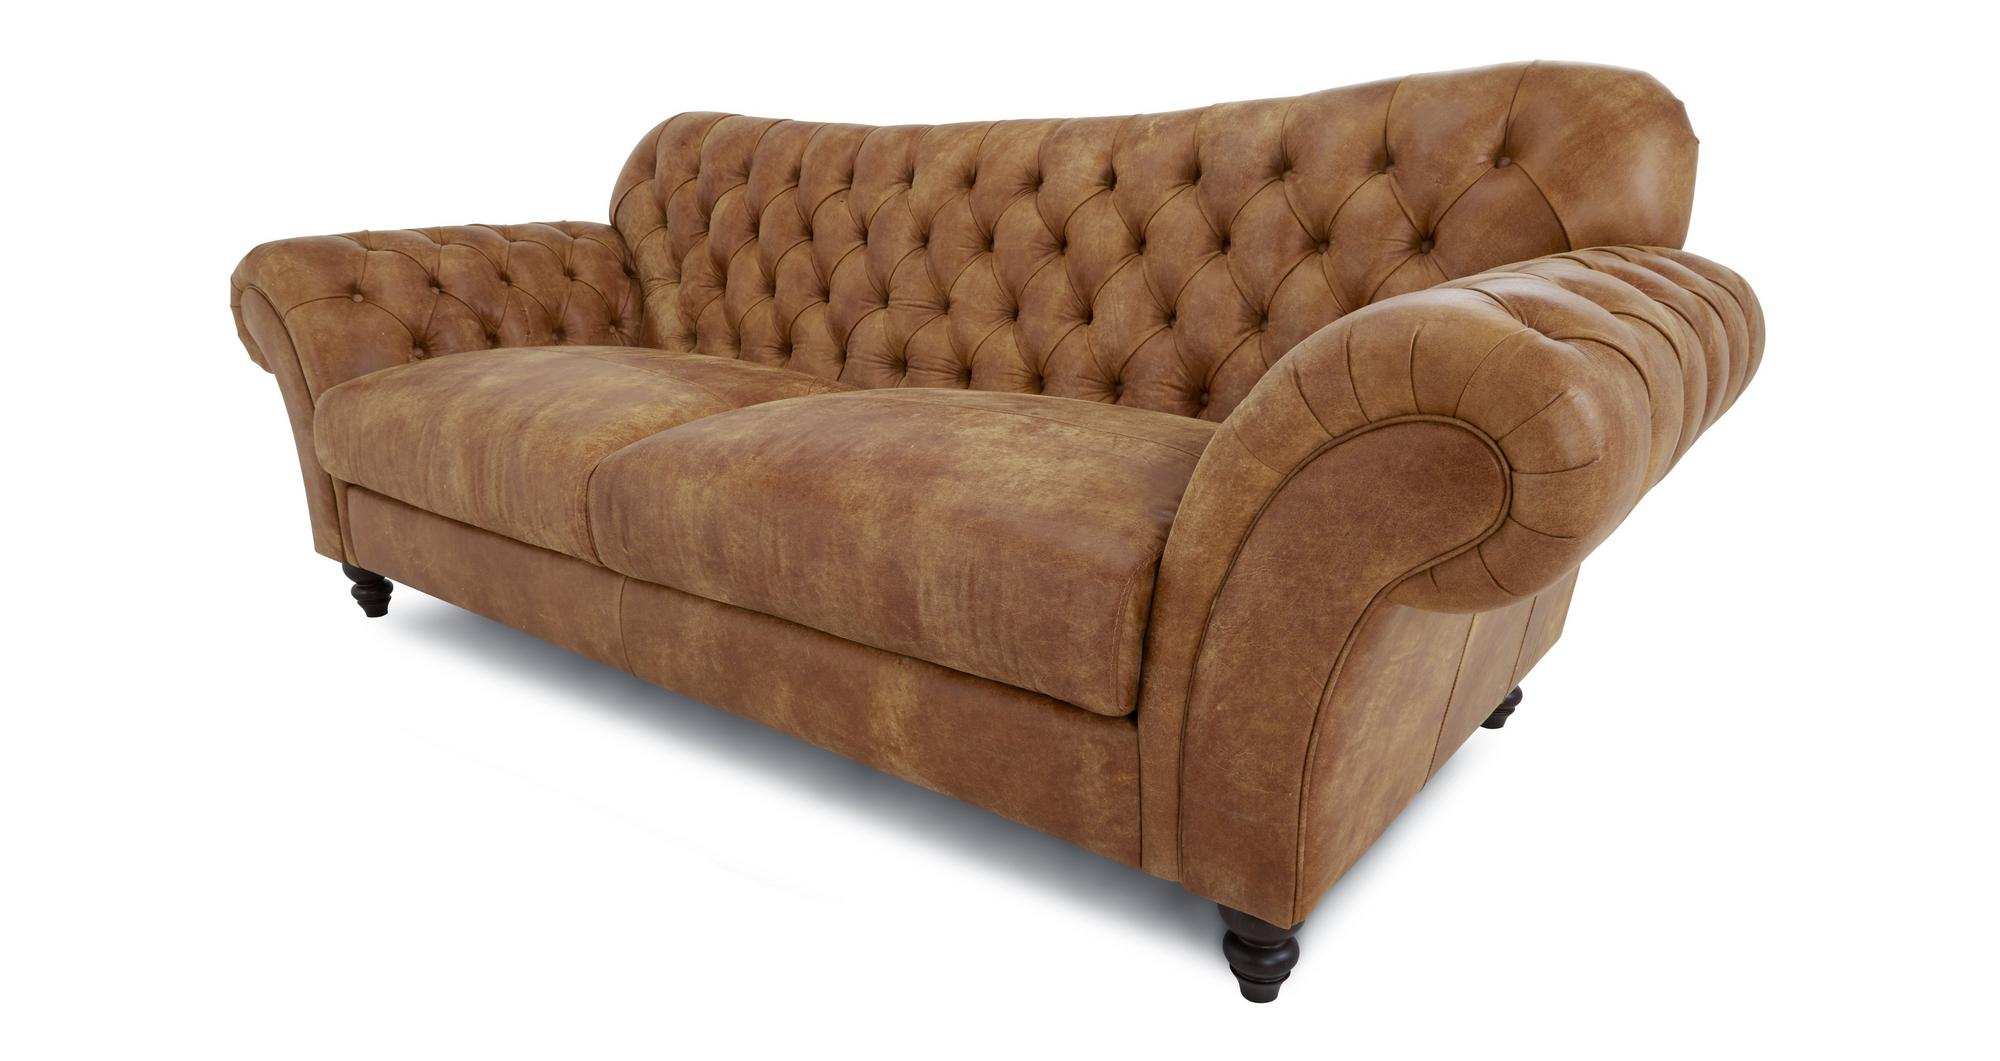 Dfs Earl Ranch Natural Leather Foam Sofa 146709 Ebay